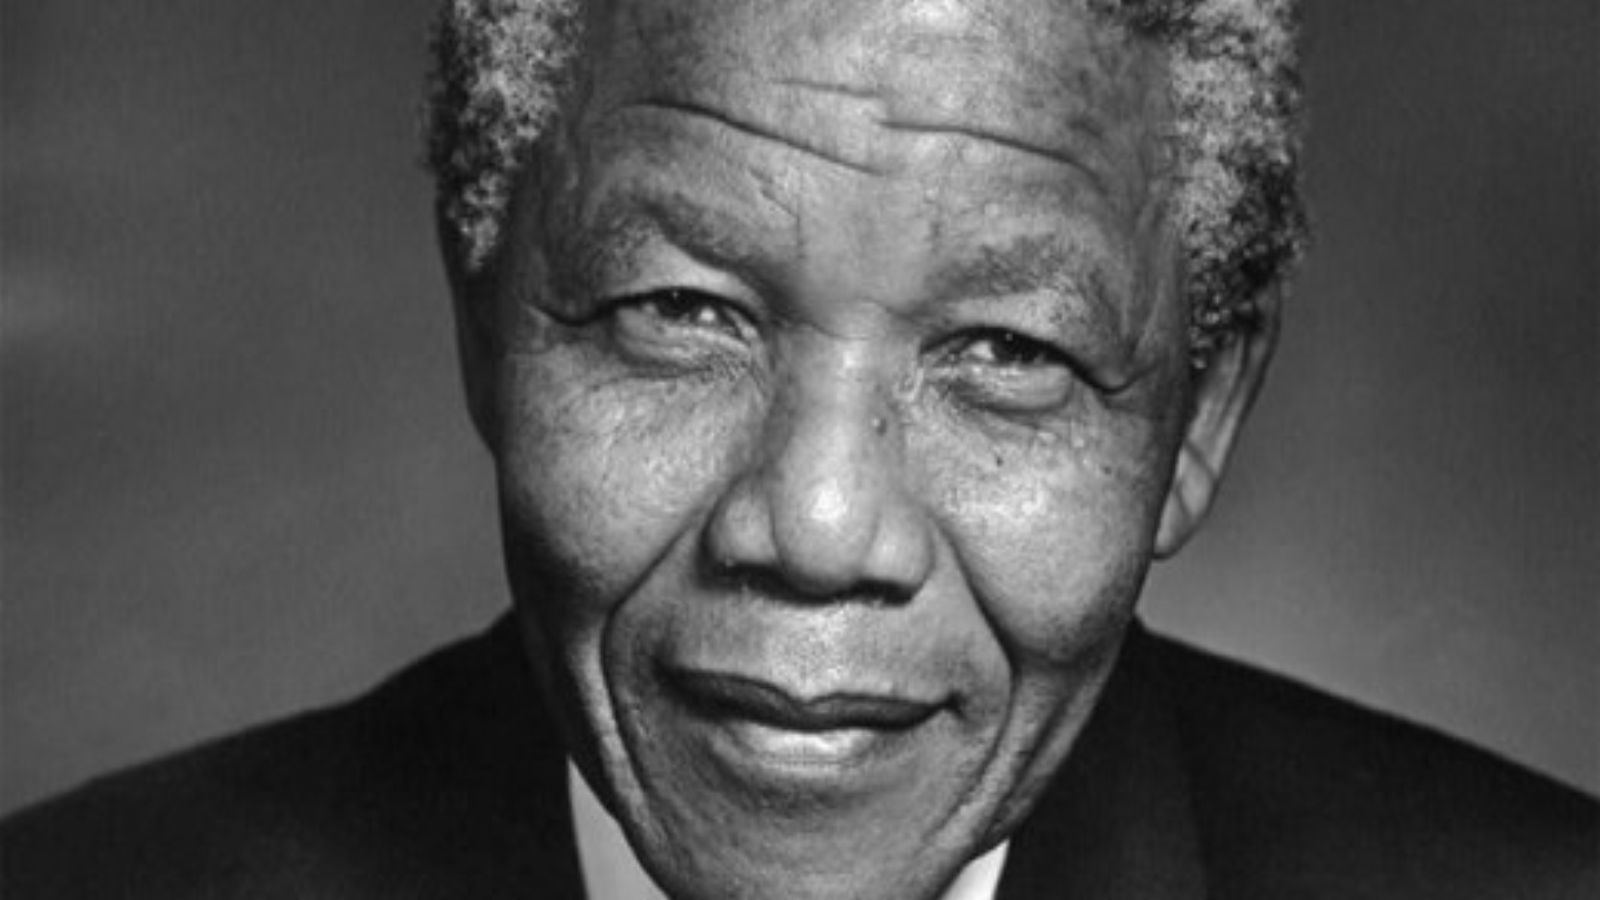 NELSON MANDELA – I:  Sharpeville and Jallianwala